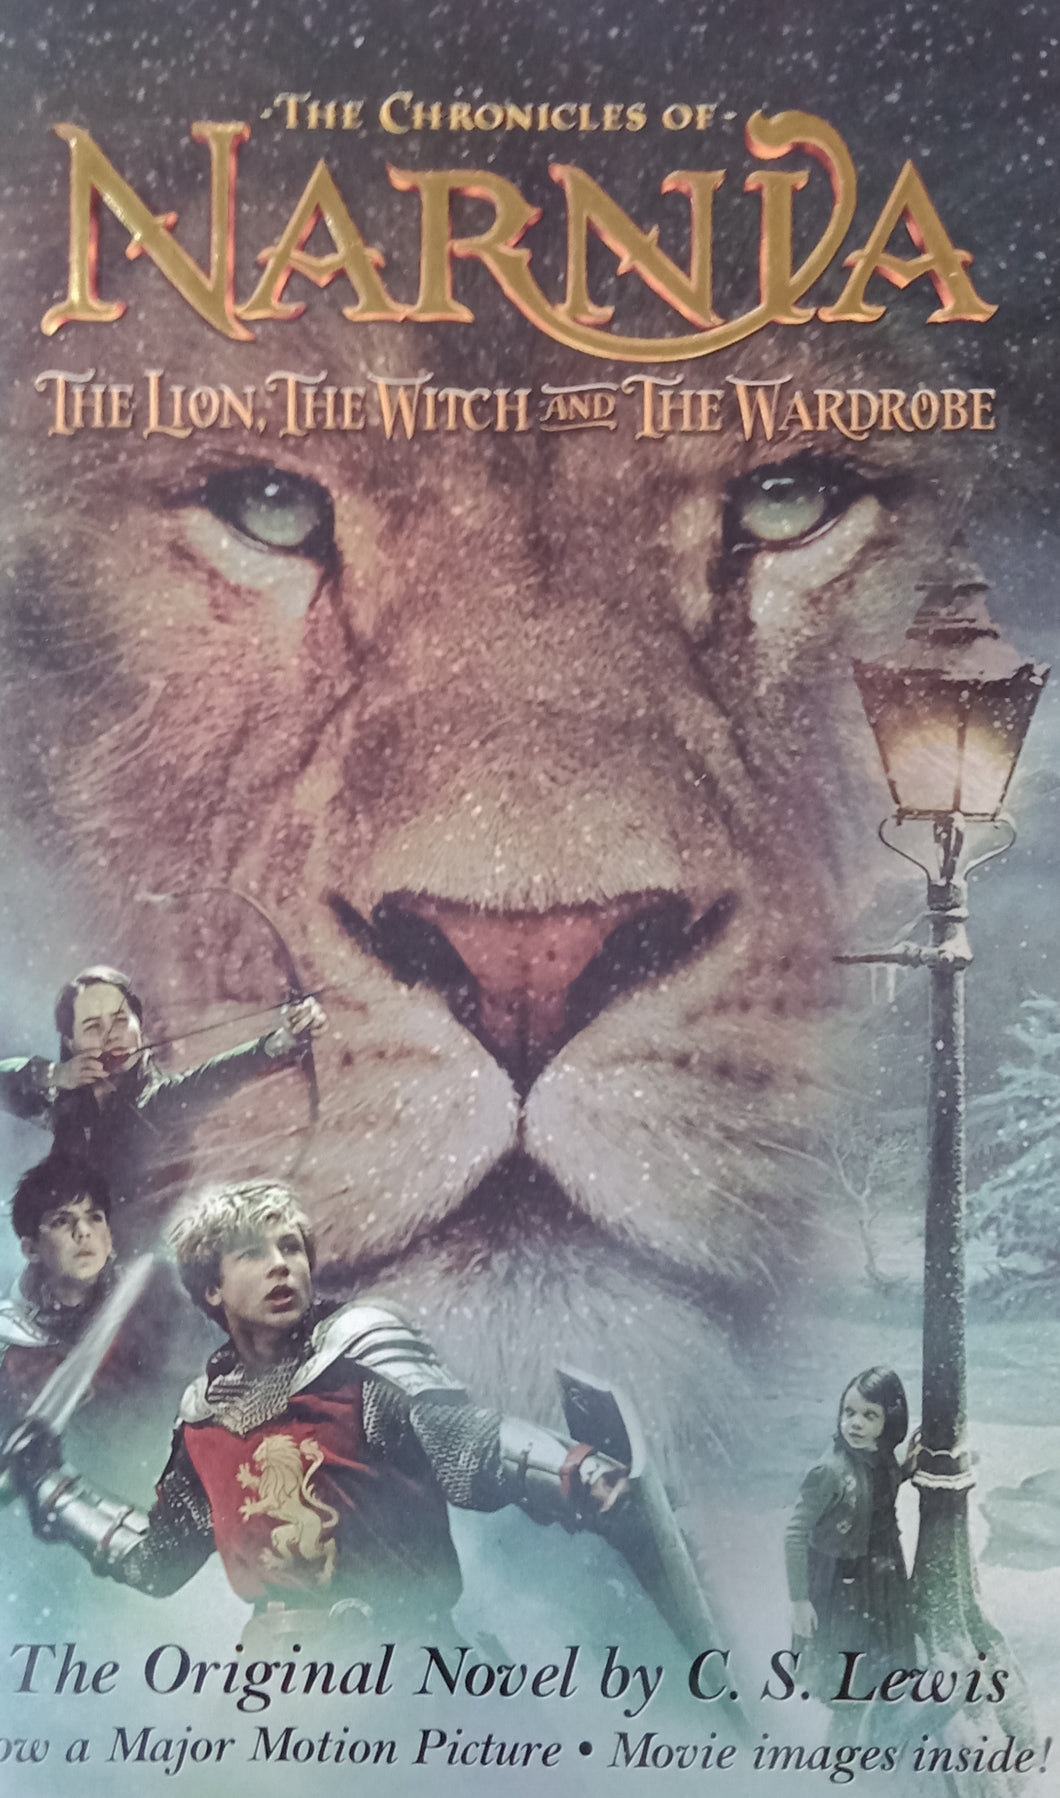 The Chronicles of Narnia The Lion,The Witch and the Wardrobe